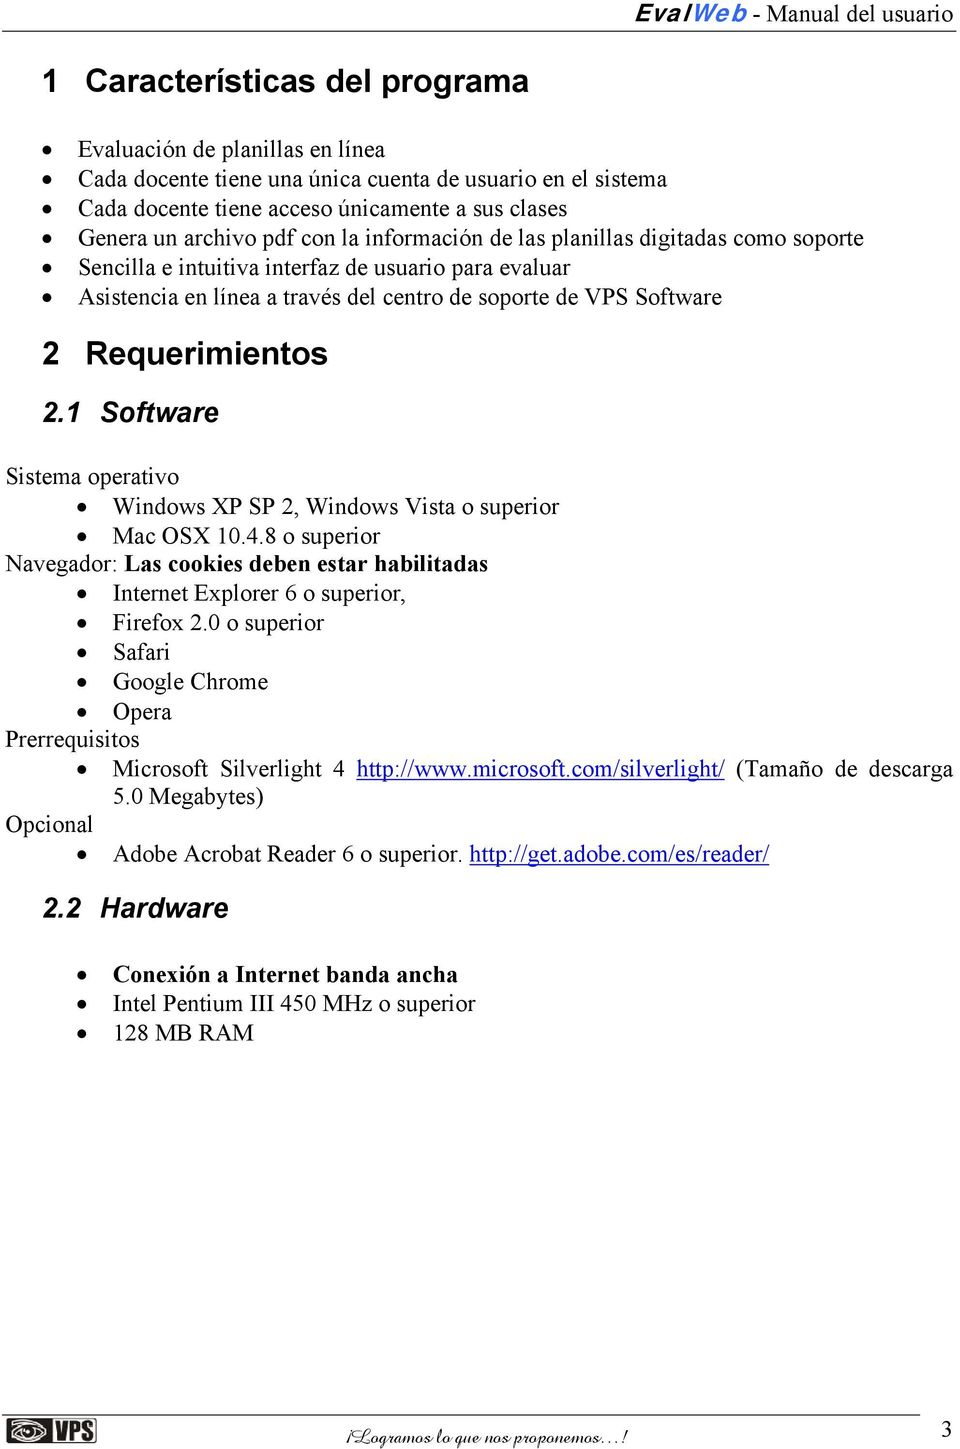 1 Software Sistema operativo Windows XP SP 2, Windows Vista o superior Mac OSX 10.4.8 o superior Navegador: Las cookies deben estar habilitadas Internet Explorer 6 o superior, Firefox 2.